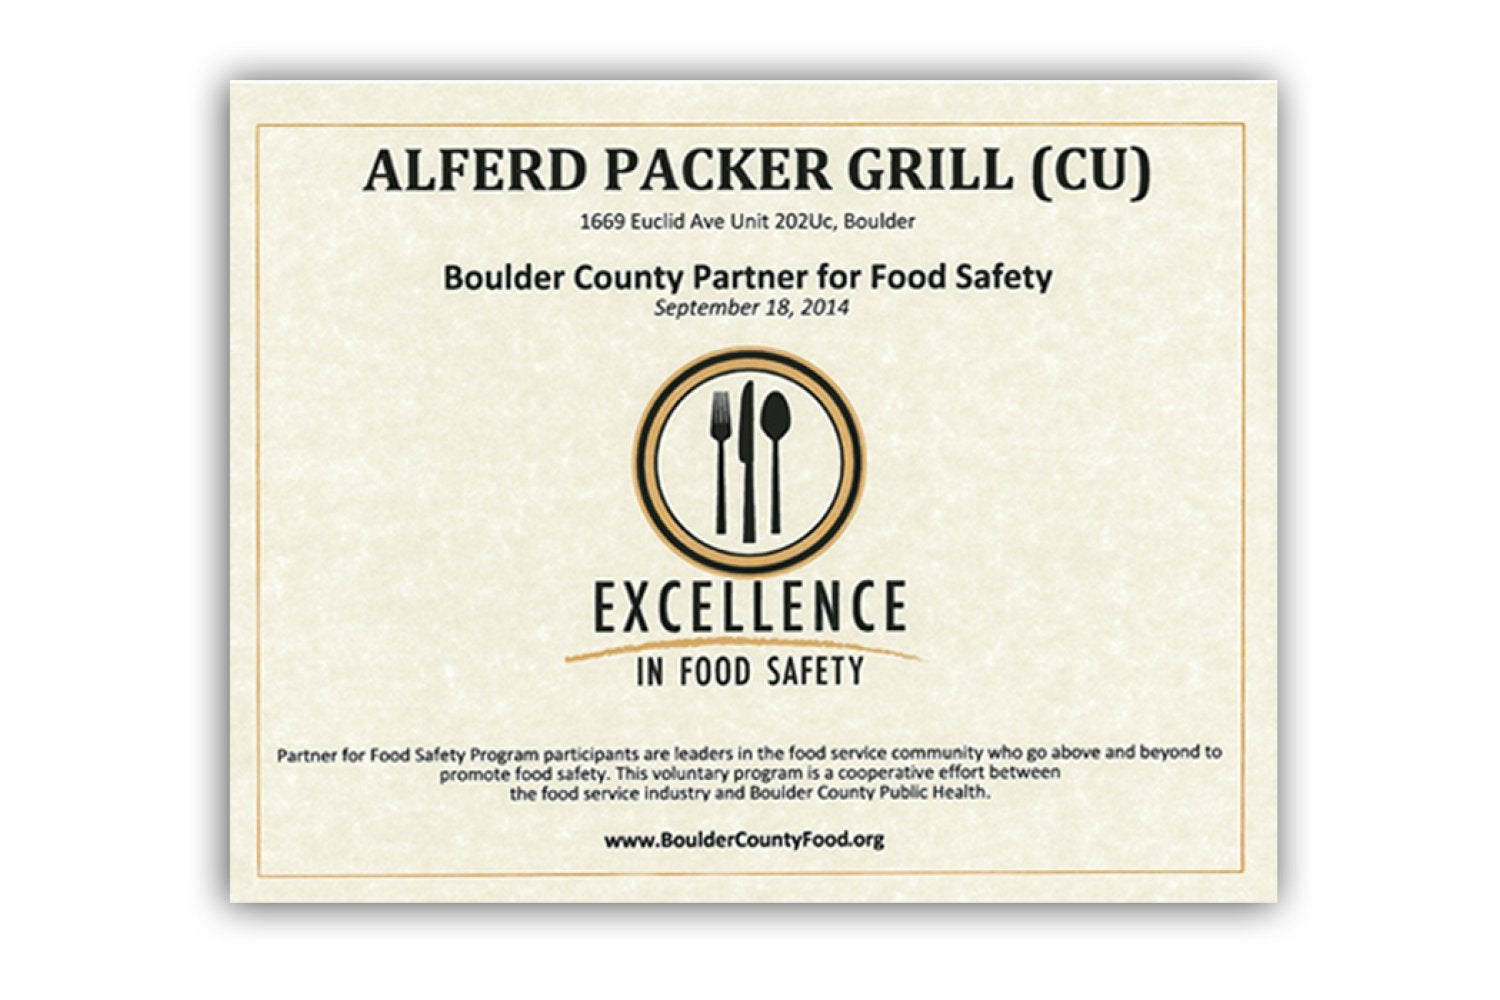 Boulder County Excellence in Food Safety certificate awarded to the UMC Alferd Packer Grill